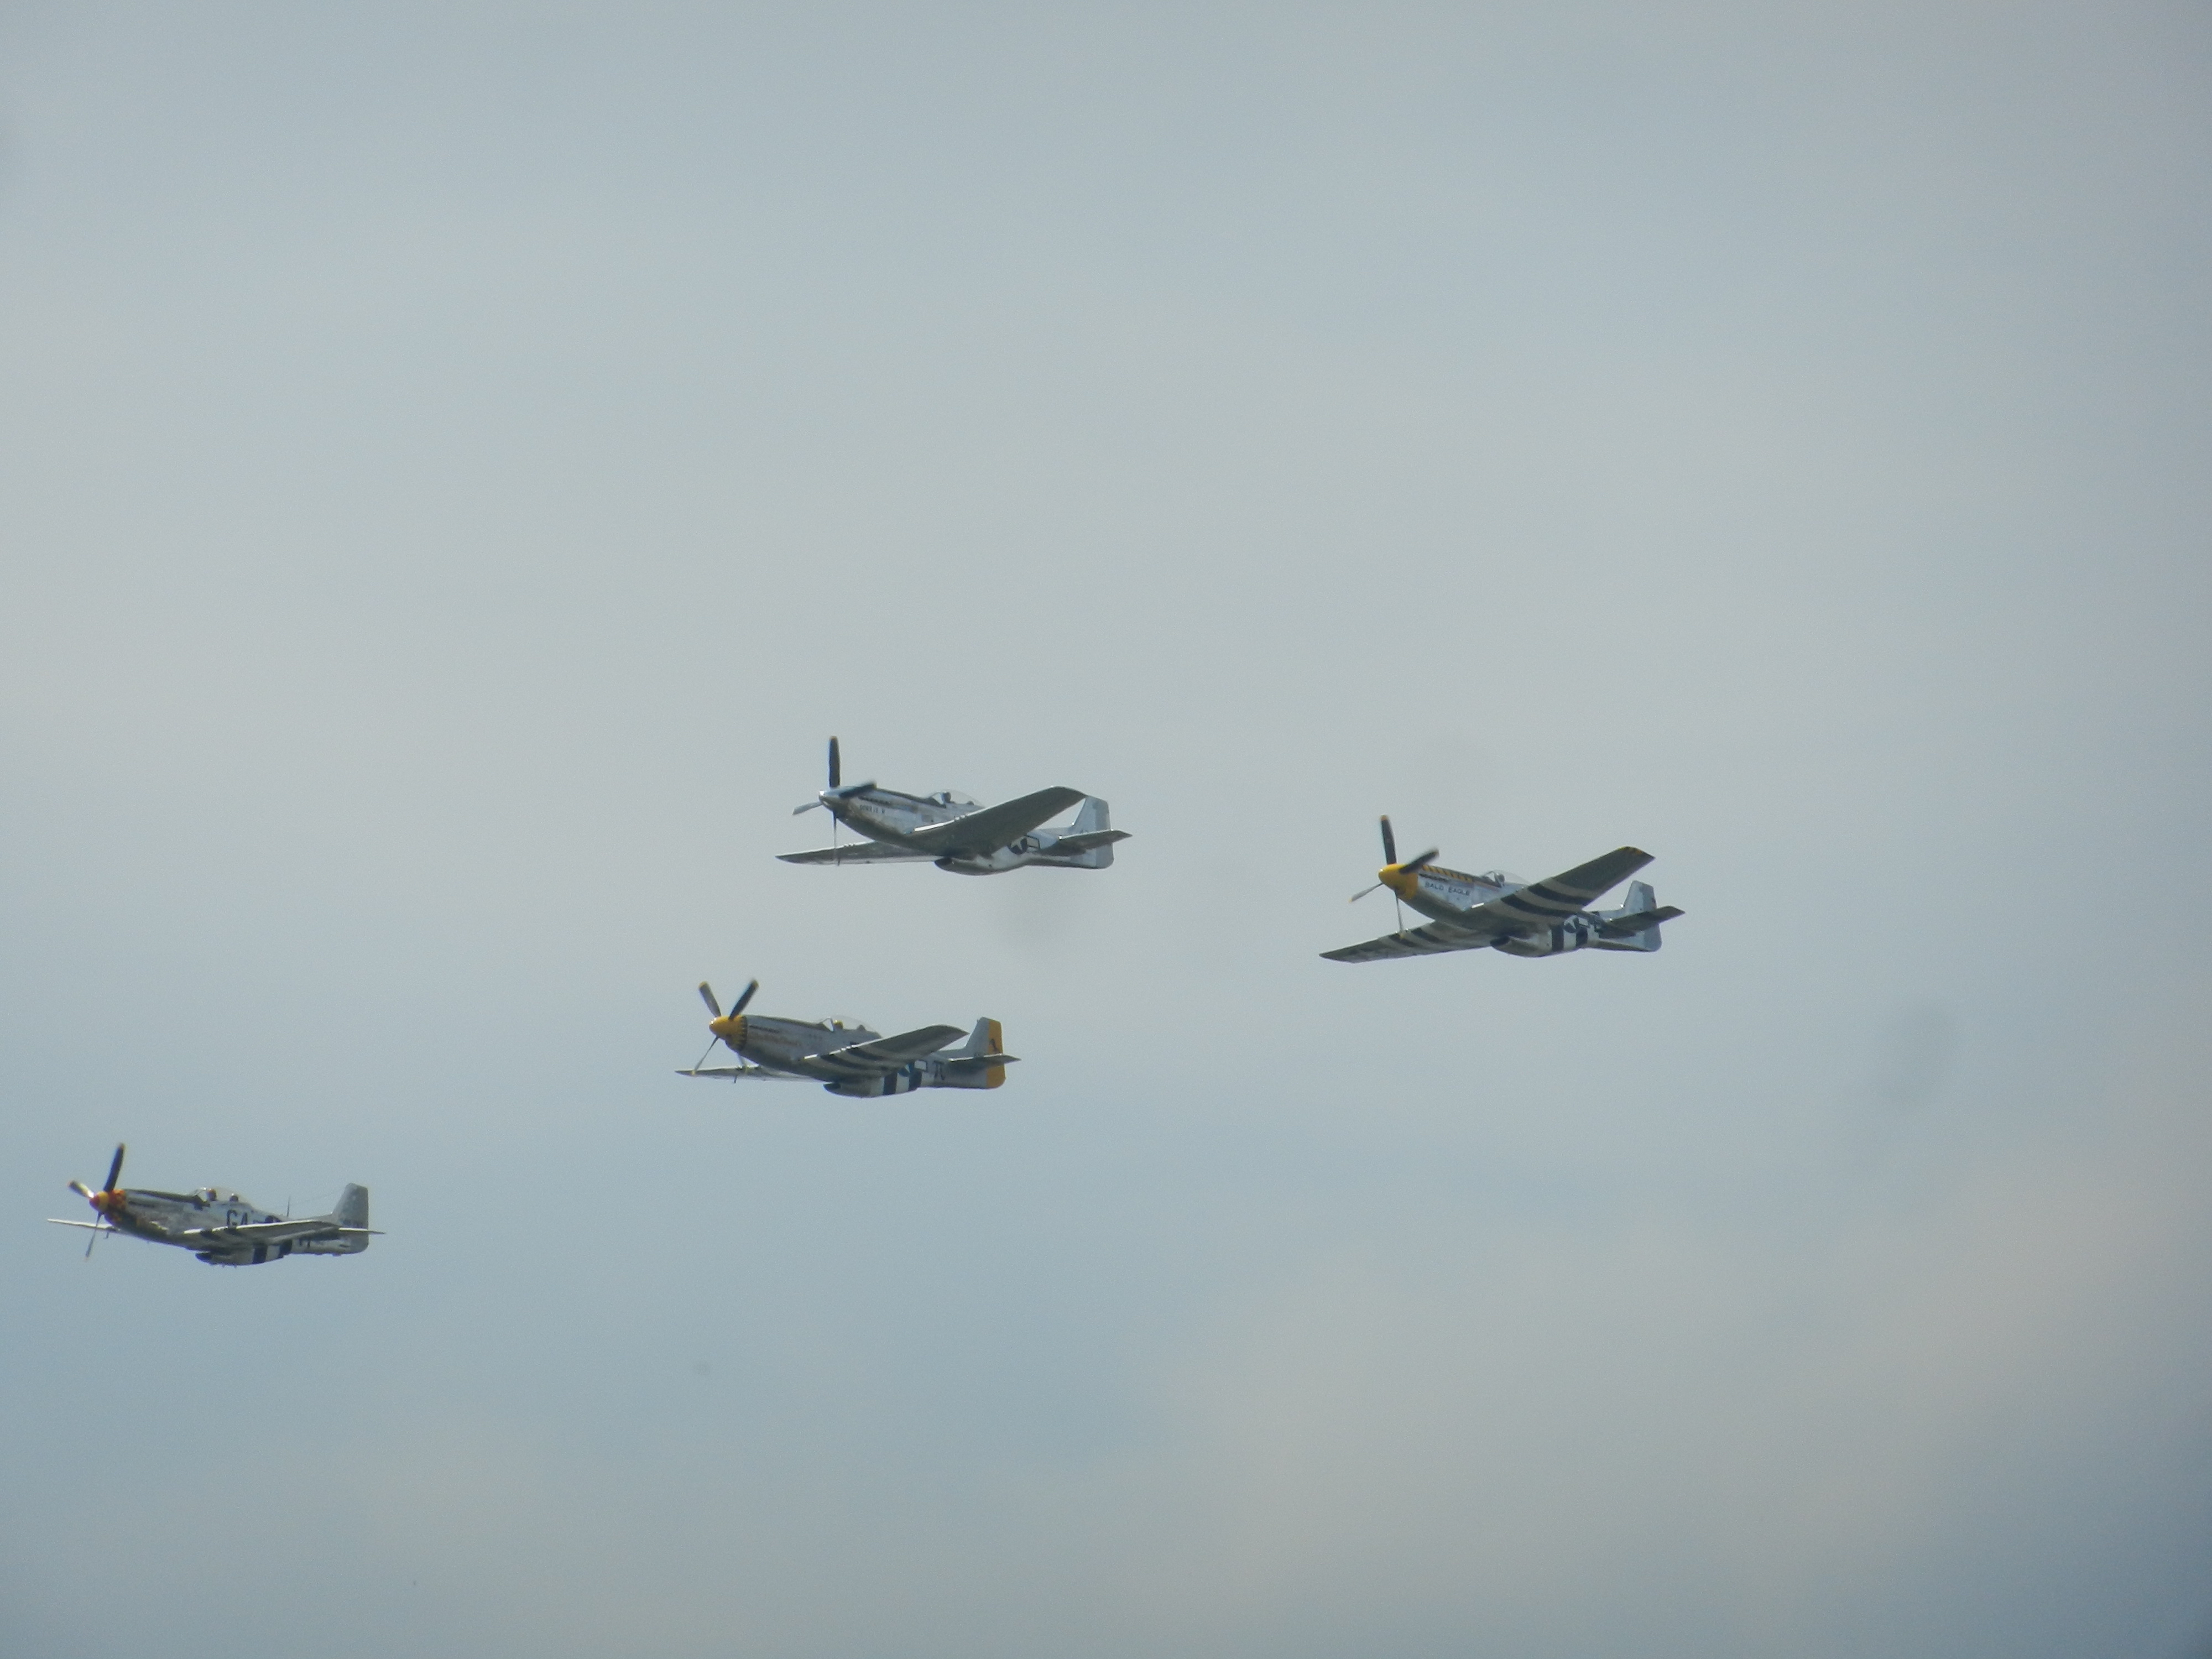 A formation of North American P-51 Mustang fighter escorts, considered one of the best fighter escorts in the war and among the most well-known World War II-era aircraft.